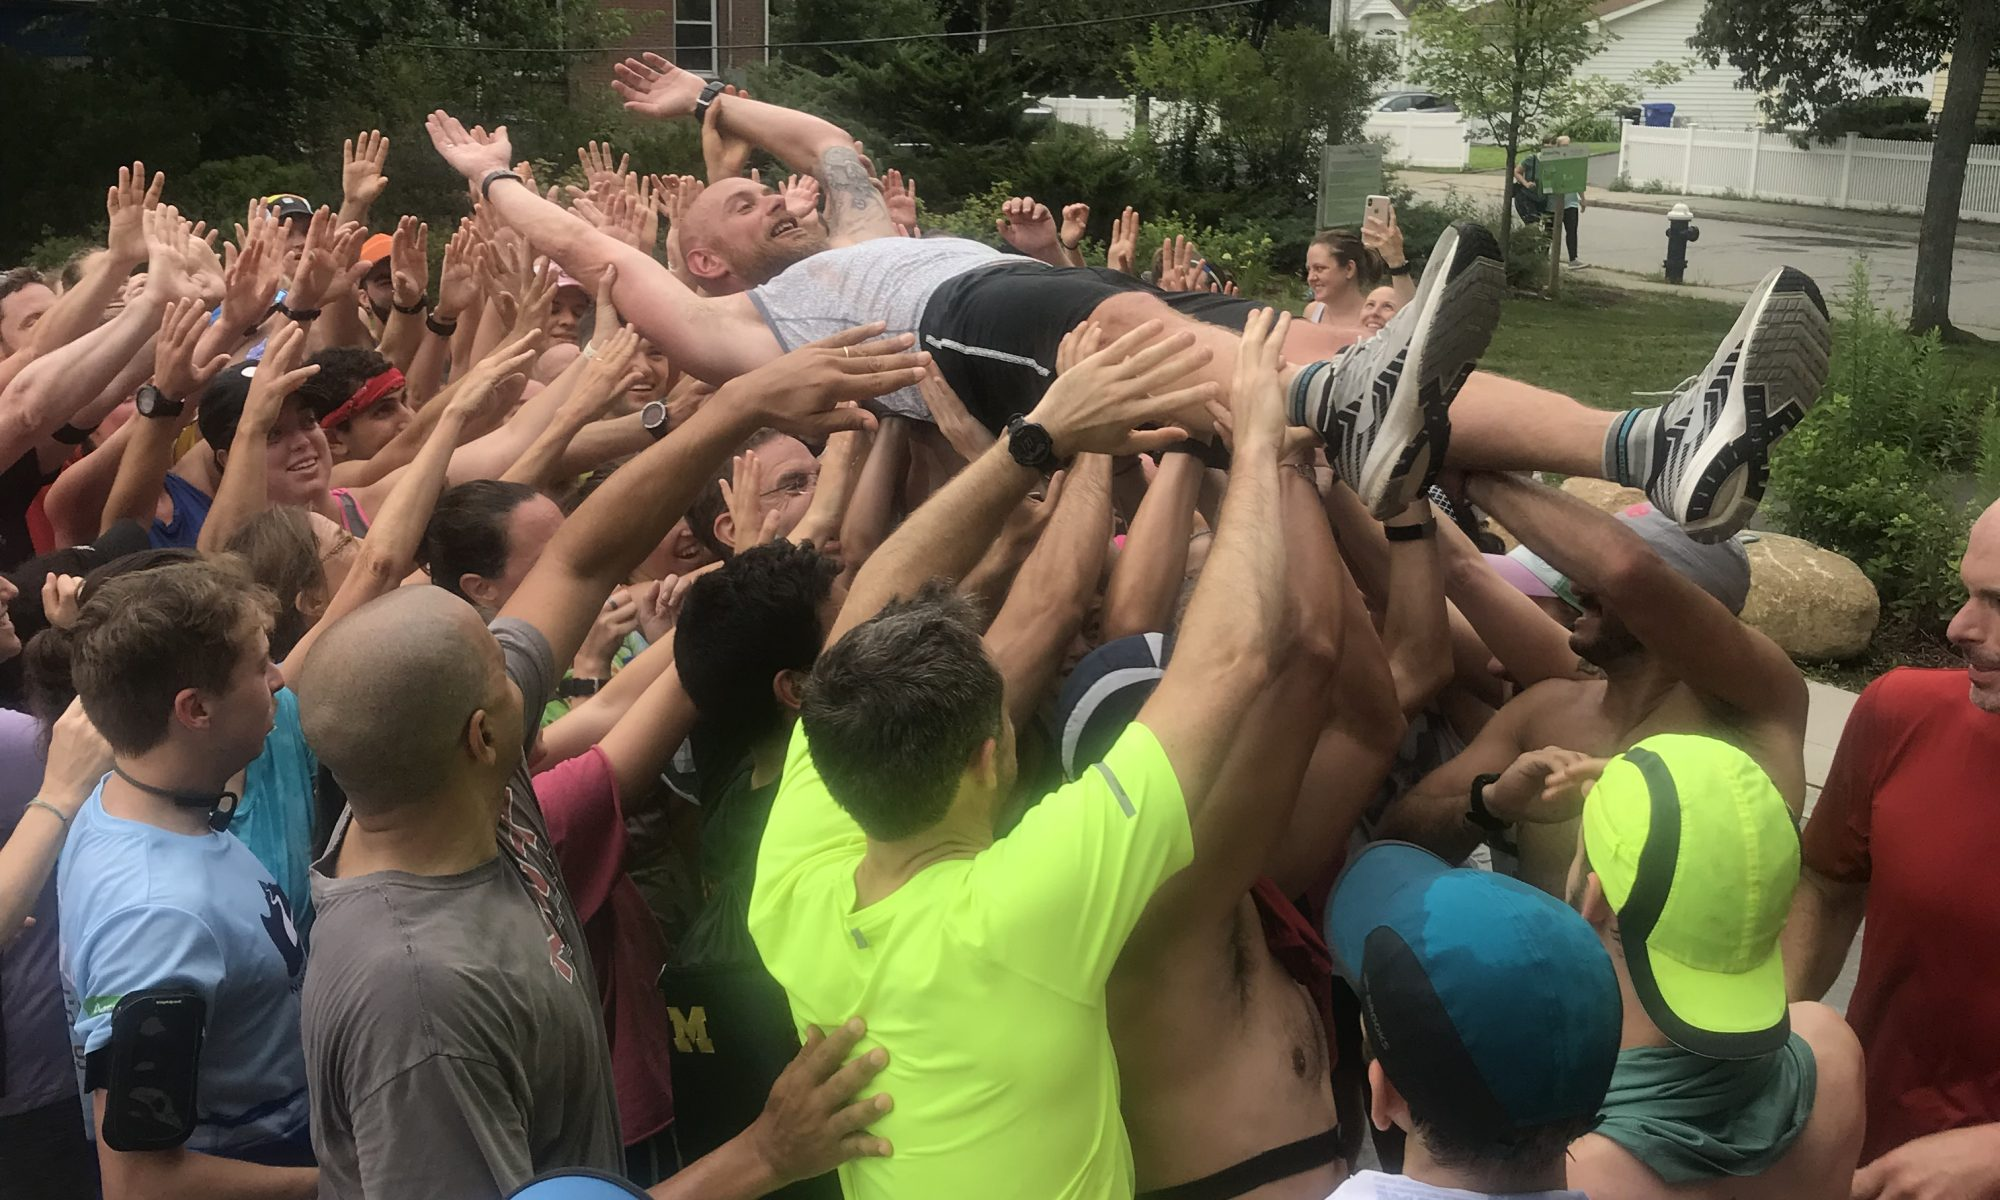 A crowd of people with arms raised up to crowd surf one man. The man is one of the co-founders of November Project and he has his arms raised up above his head and is smiling, wearing Brooks shoes.